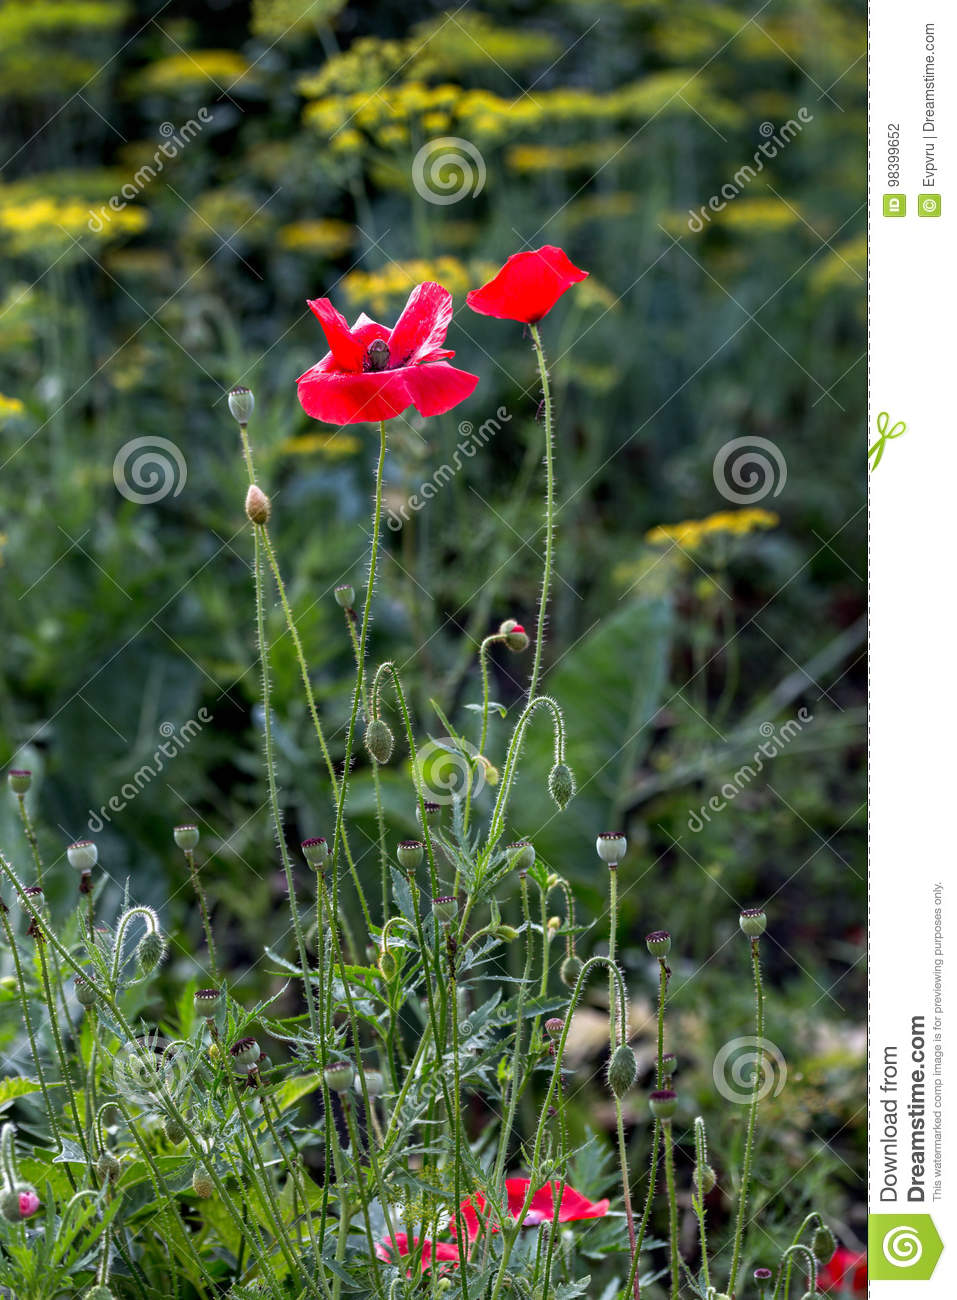 Opium poppy papaver somniferum flower stock photo image of download opium poppy papaver somniferum flower stock photo image of blooming blossom 98399652 mightylinksfo